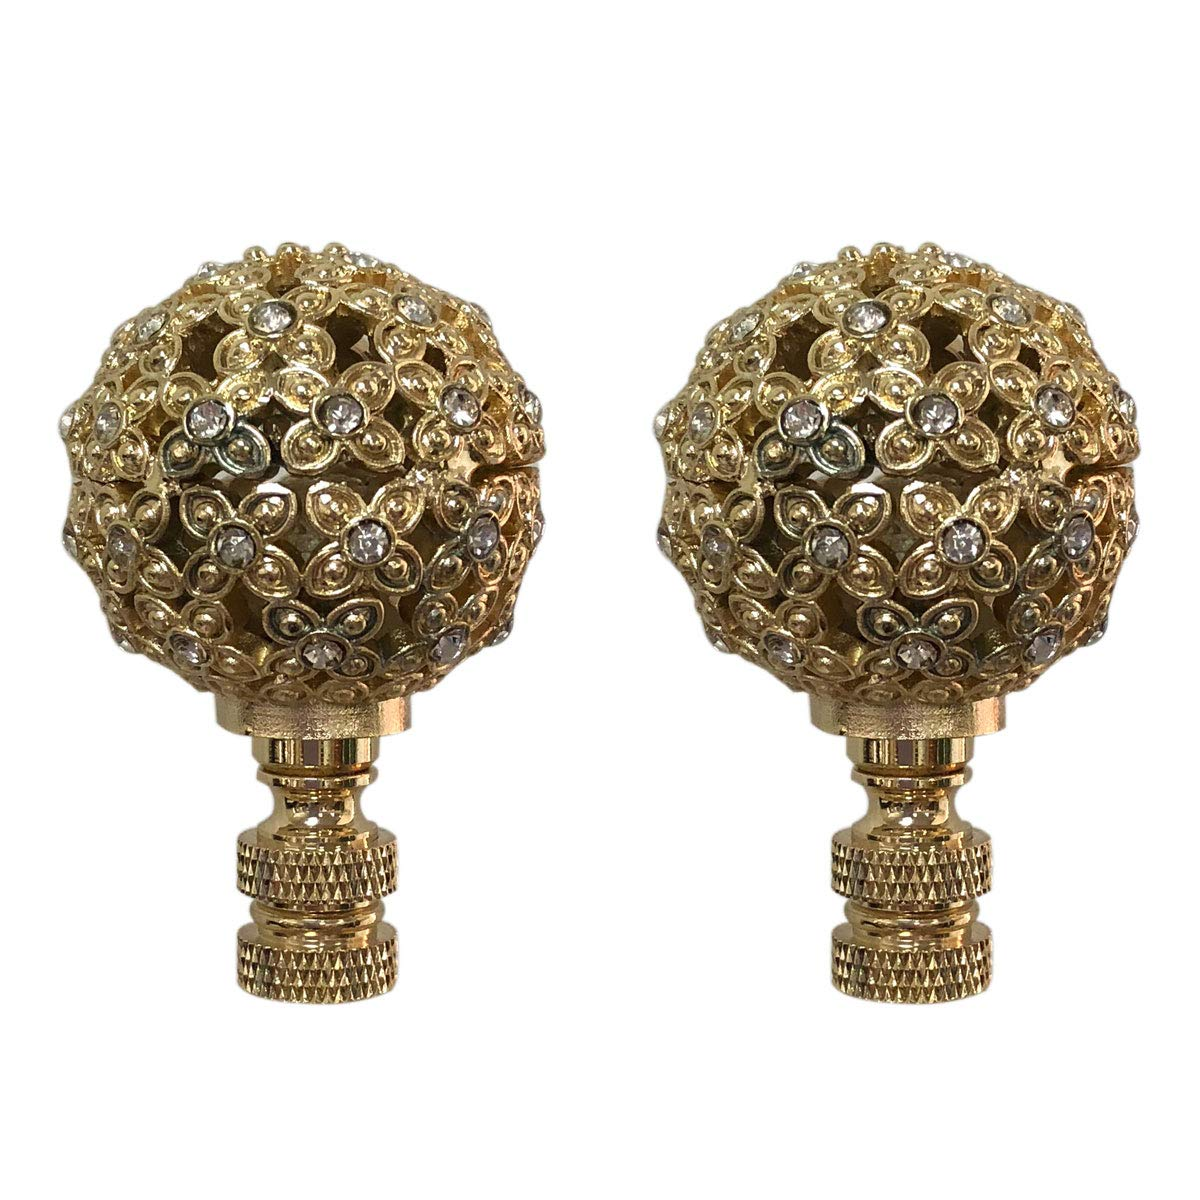 Royal Designs F-5074PB-2 Floral Motif Sphere with Crystal Accents Lamp Finial, Polished Brass, Set of 2